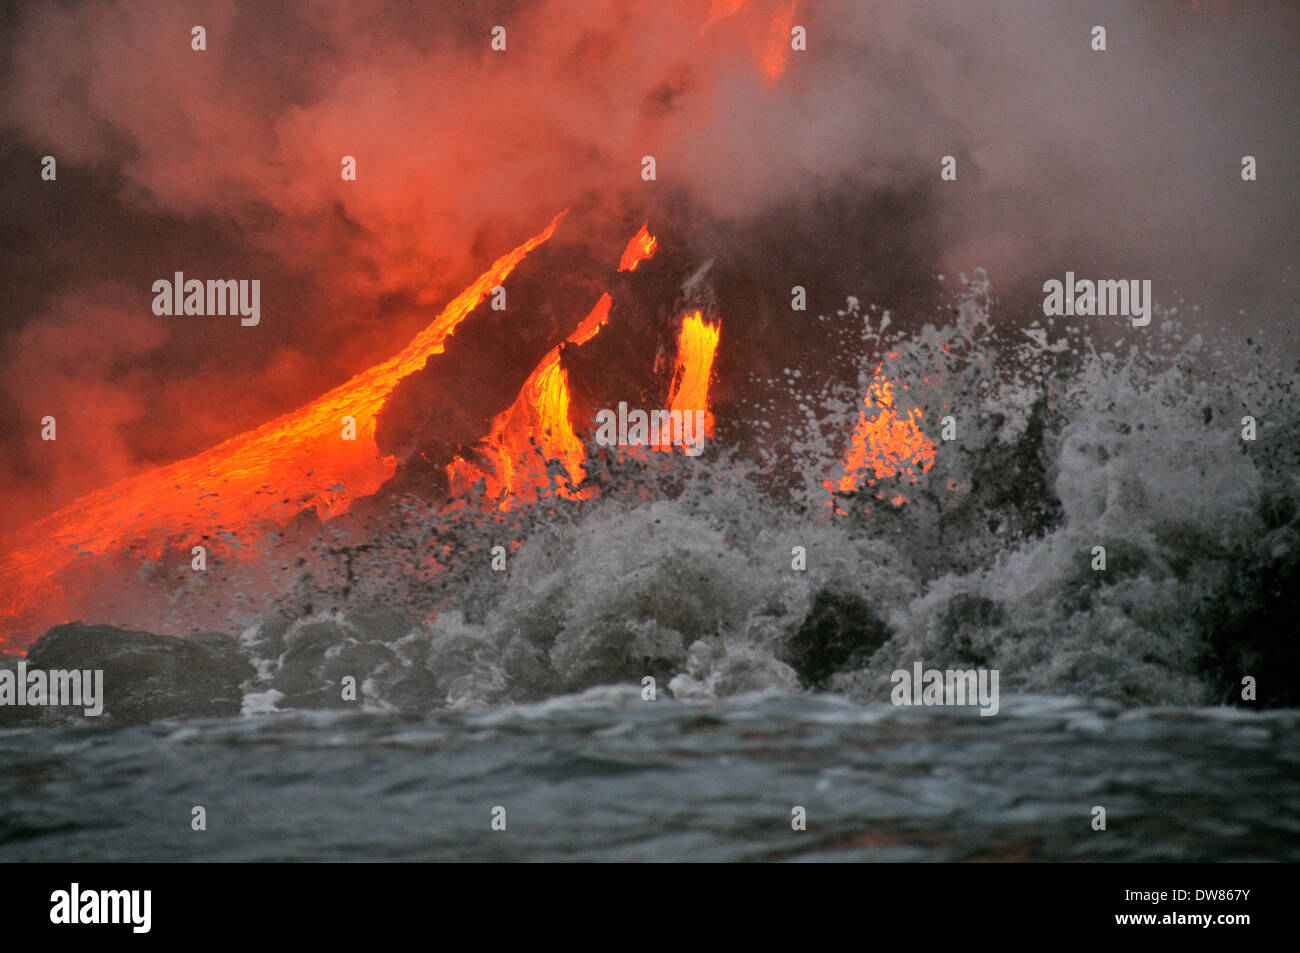 Waves crashing and lava from Kilauea Volcano flowing into the ocean, Hawaii Volcanoes National Park, Big Island, Hawaii, USA - Stock Image